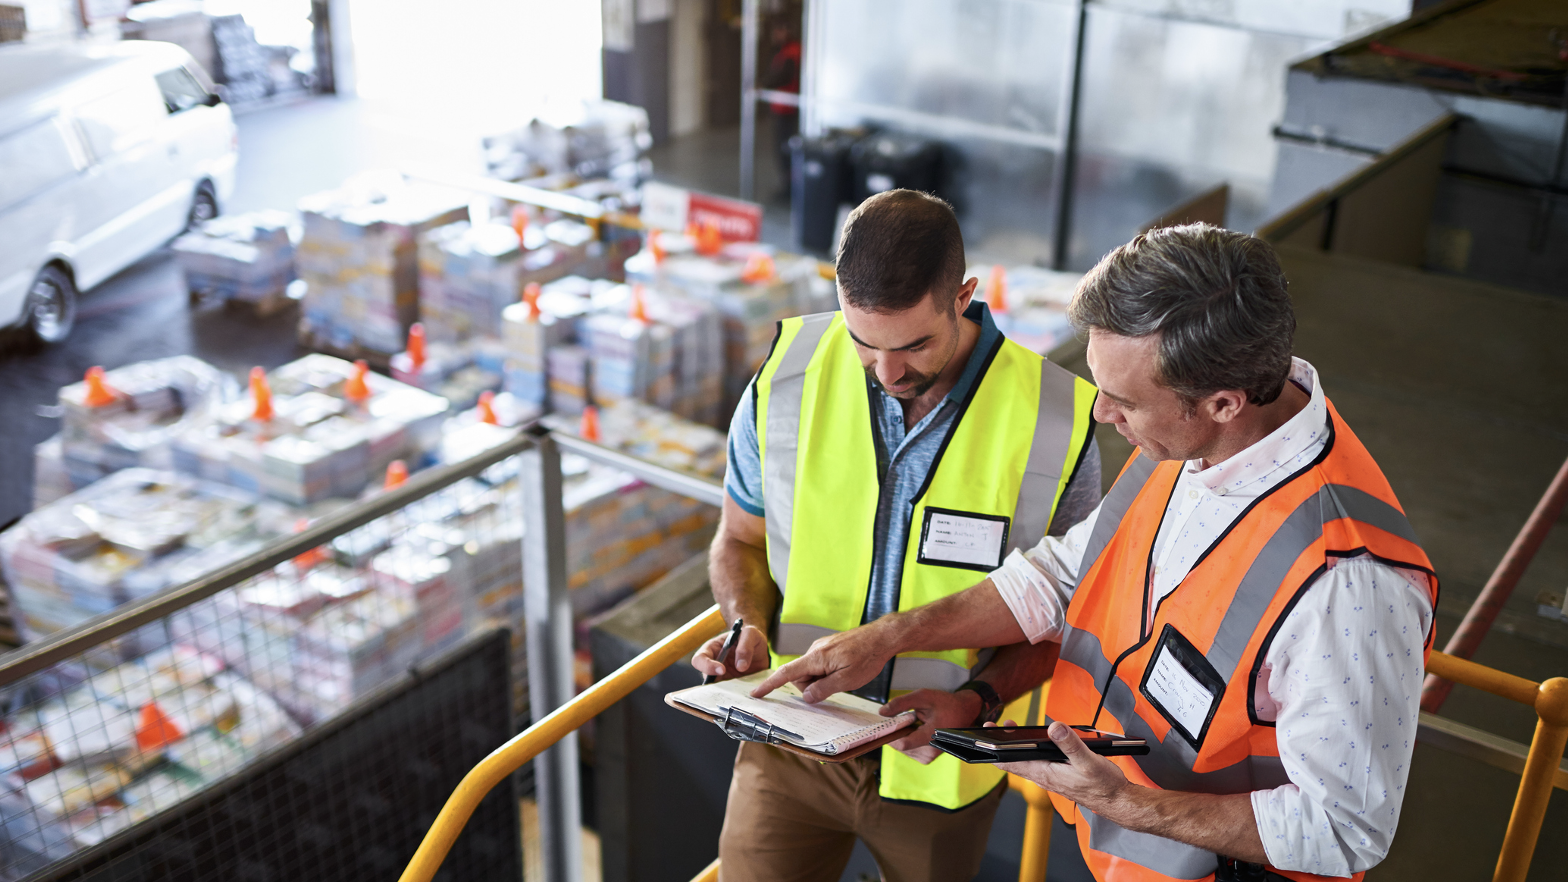 All you need to know about the IOSH Managing Safely course